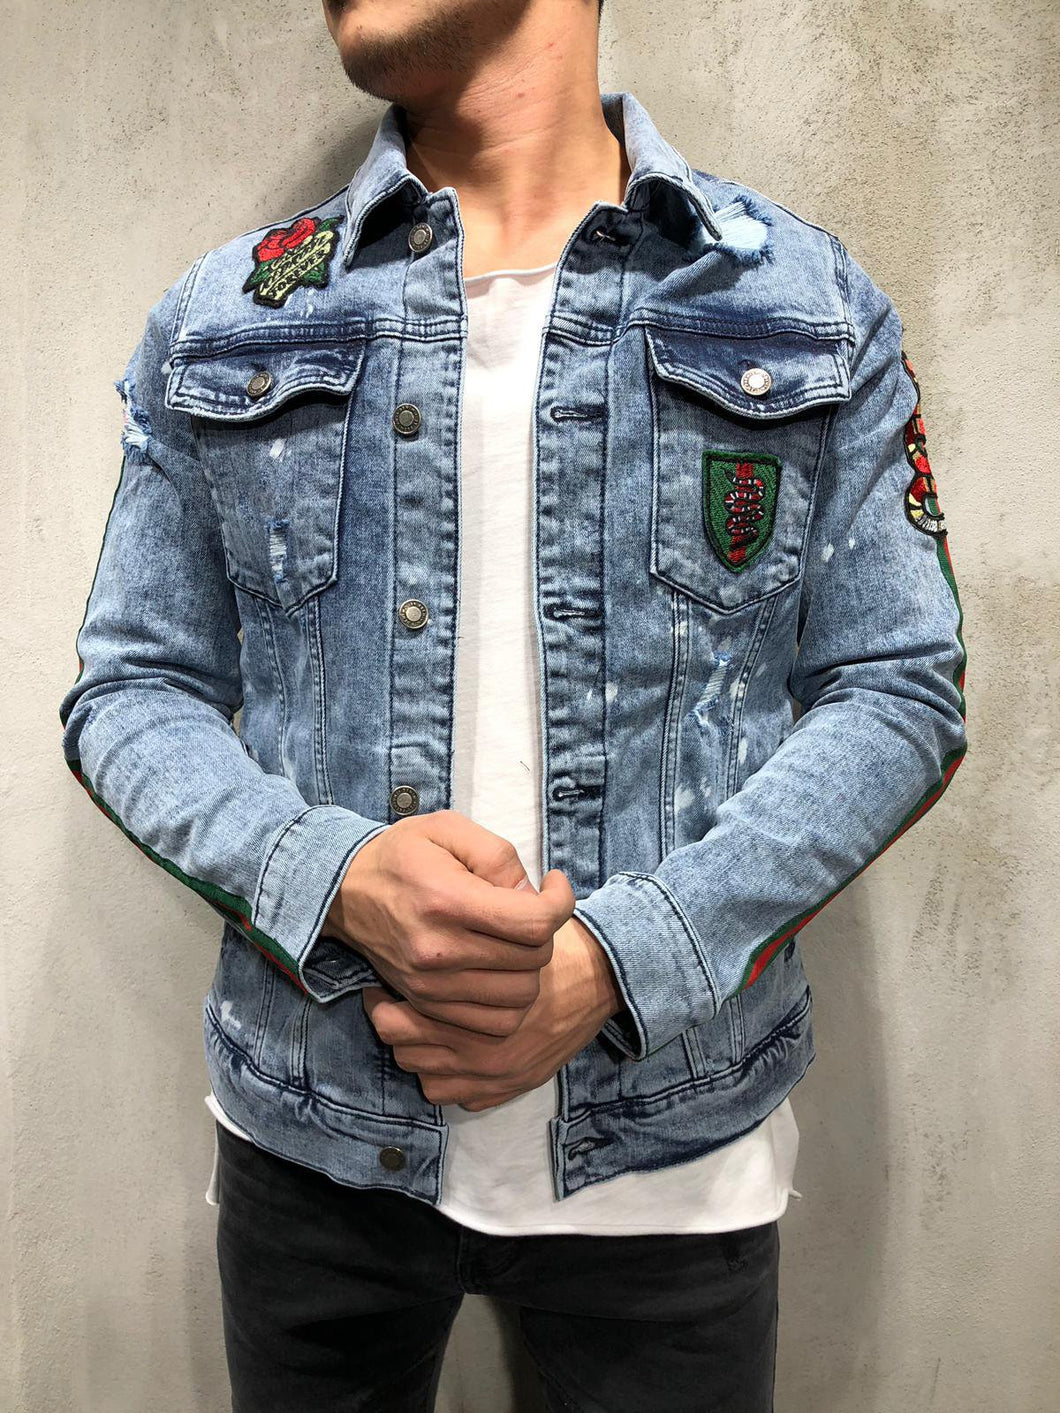 Denim Jacket Snake Patch Embroidery 4038